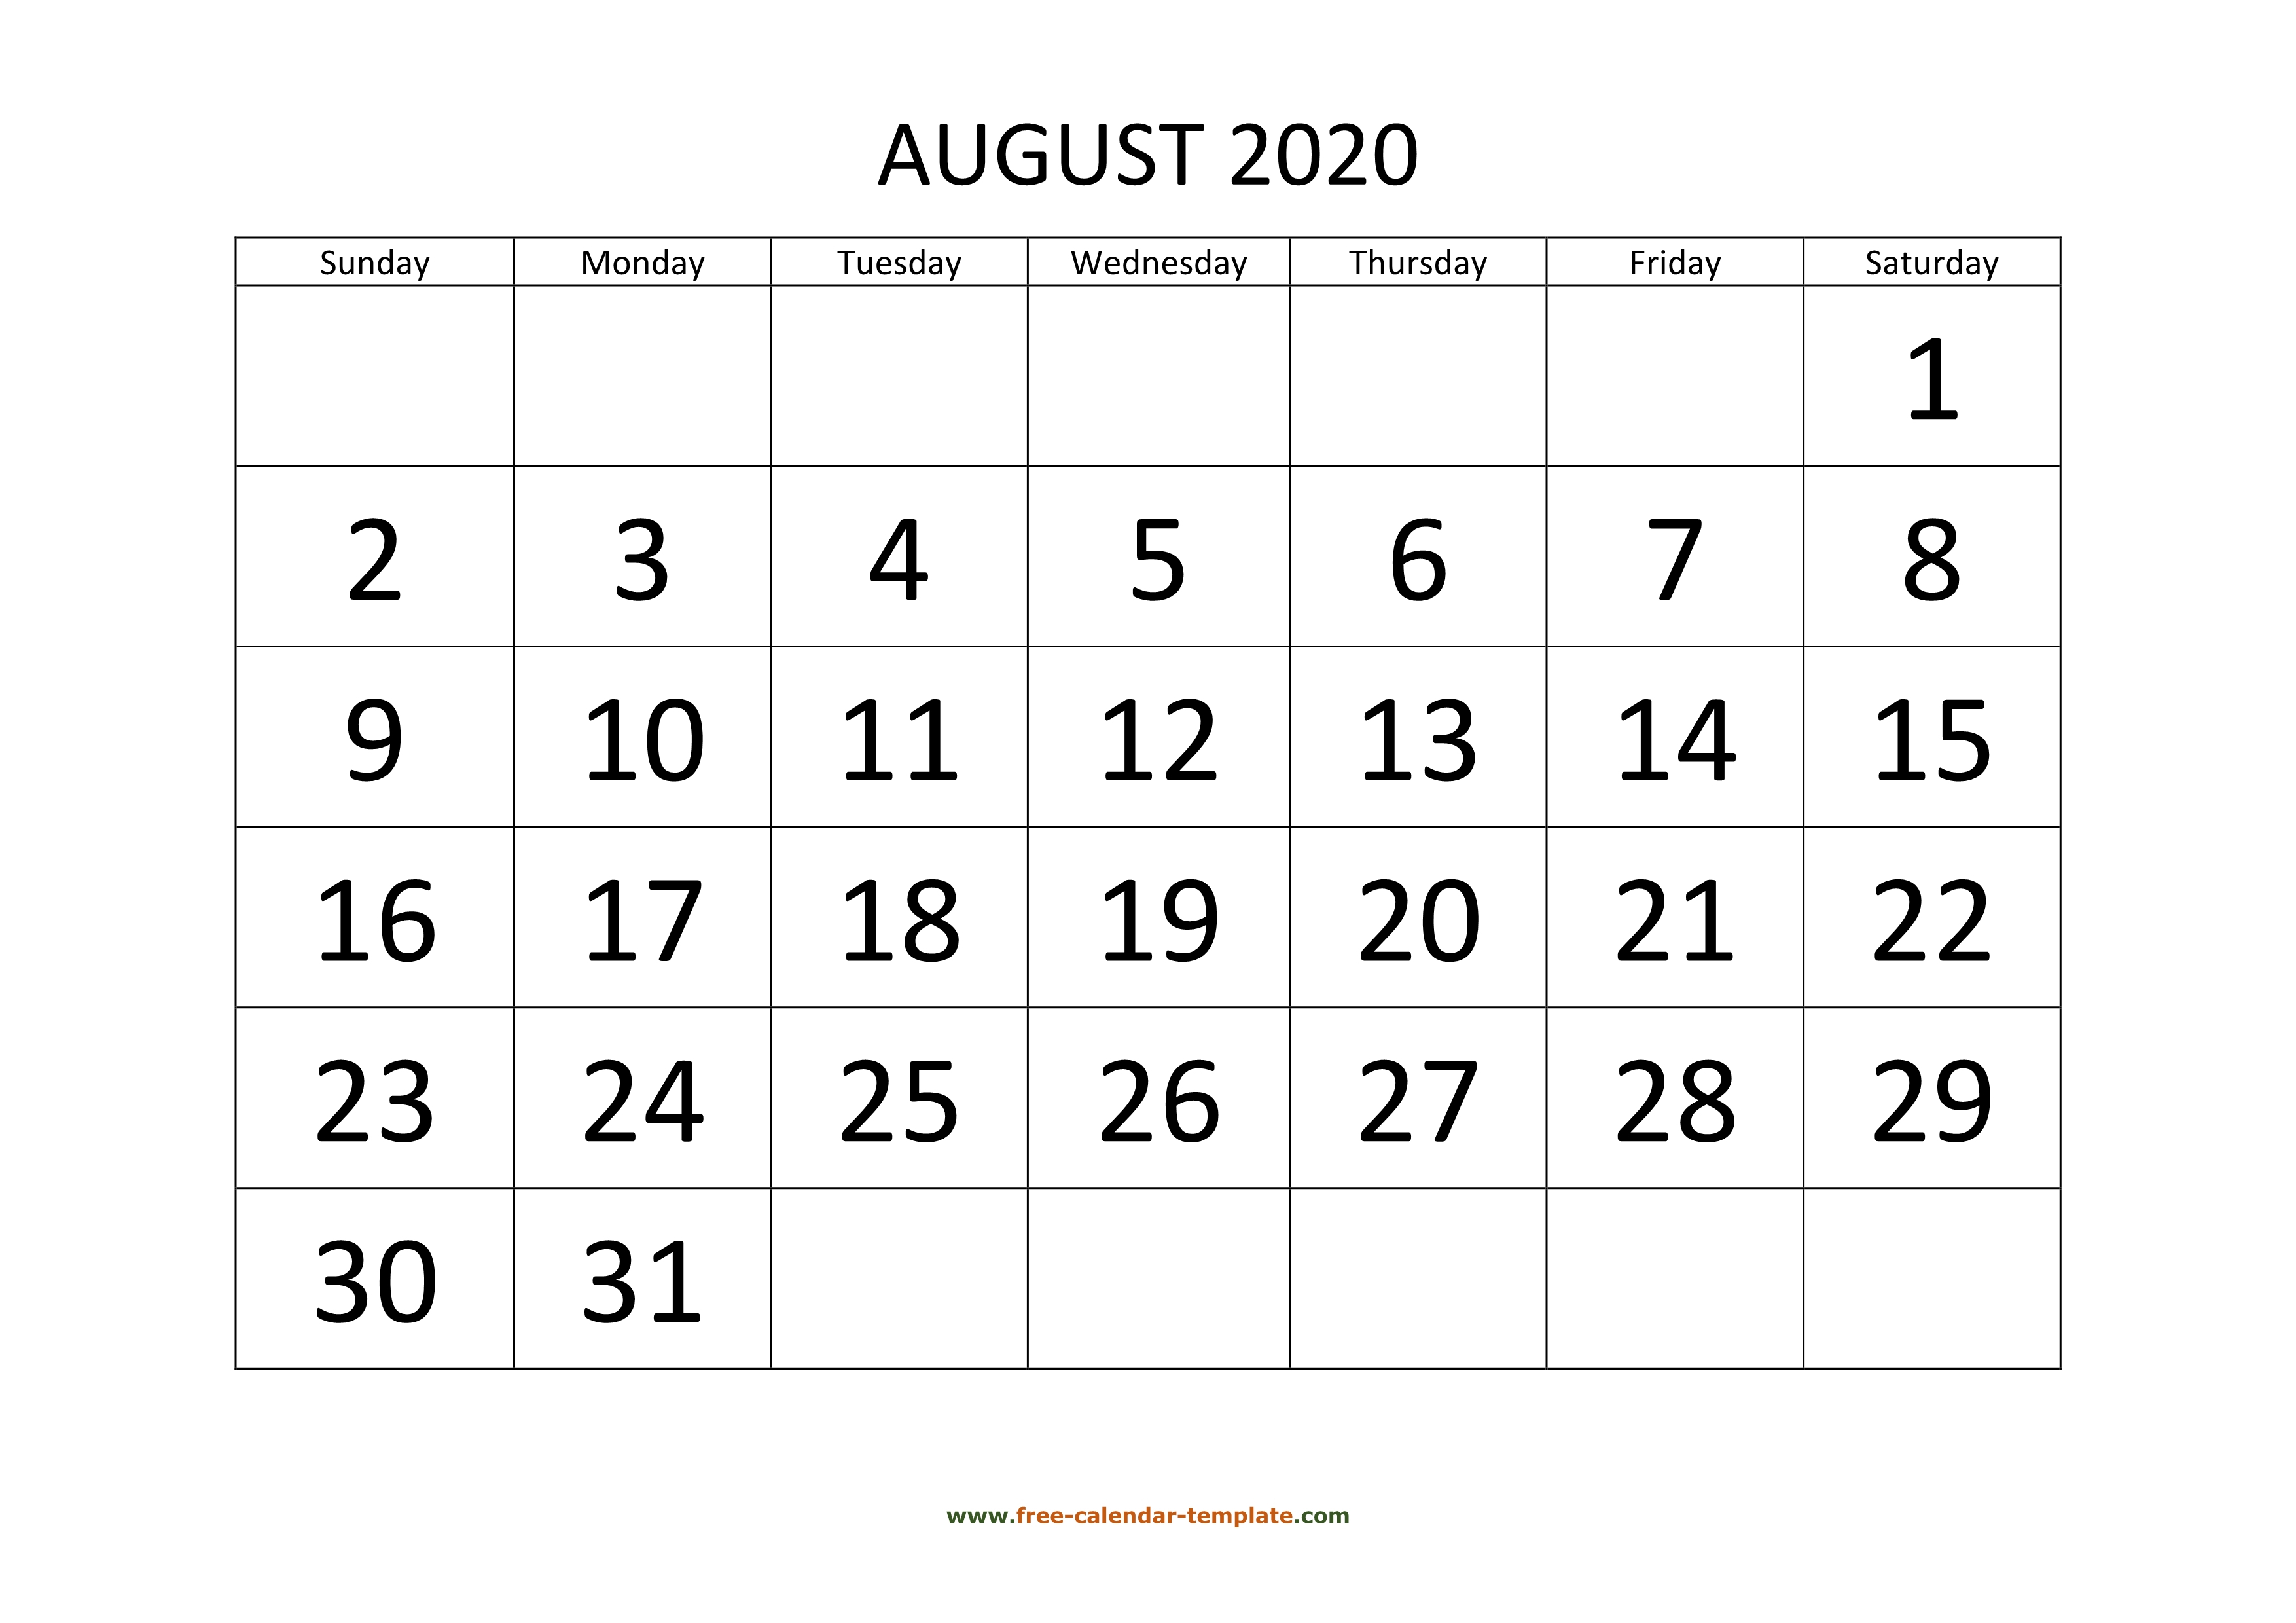 August 2020 Calendar Designed With Large Font (Horizontal